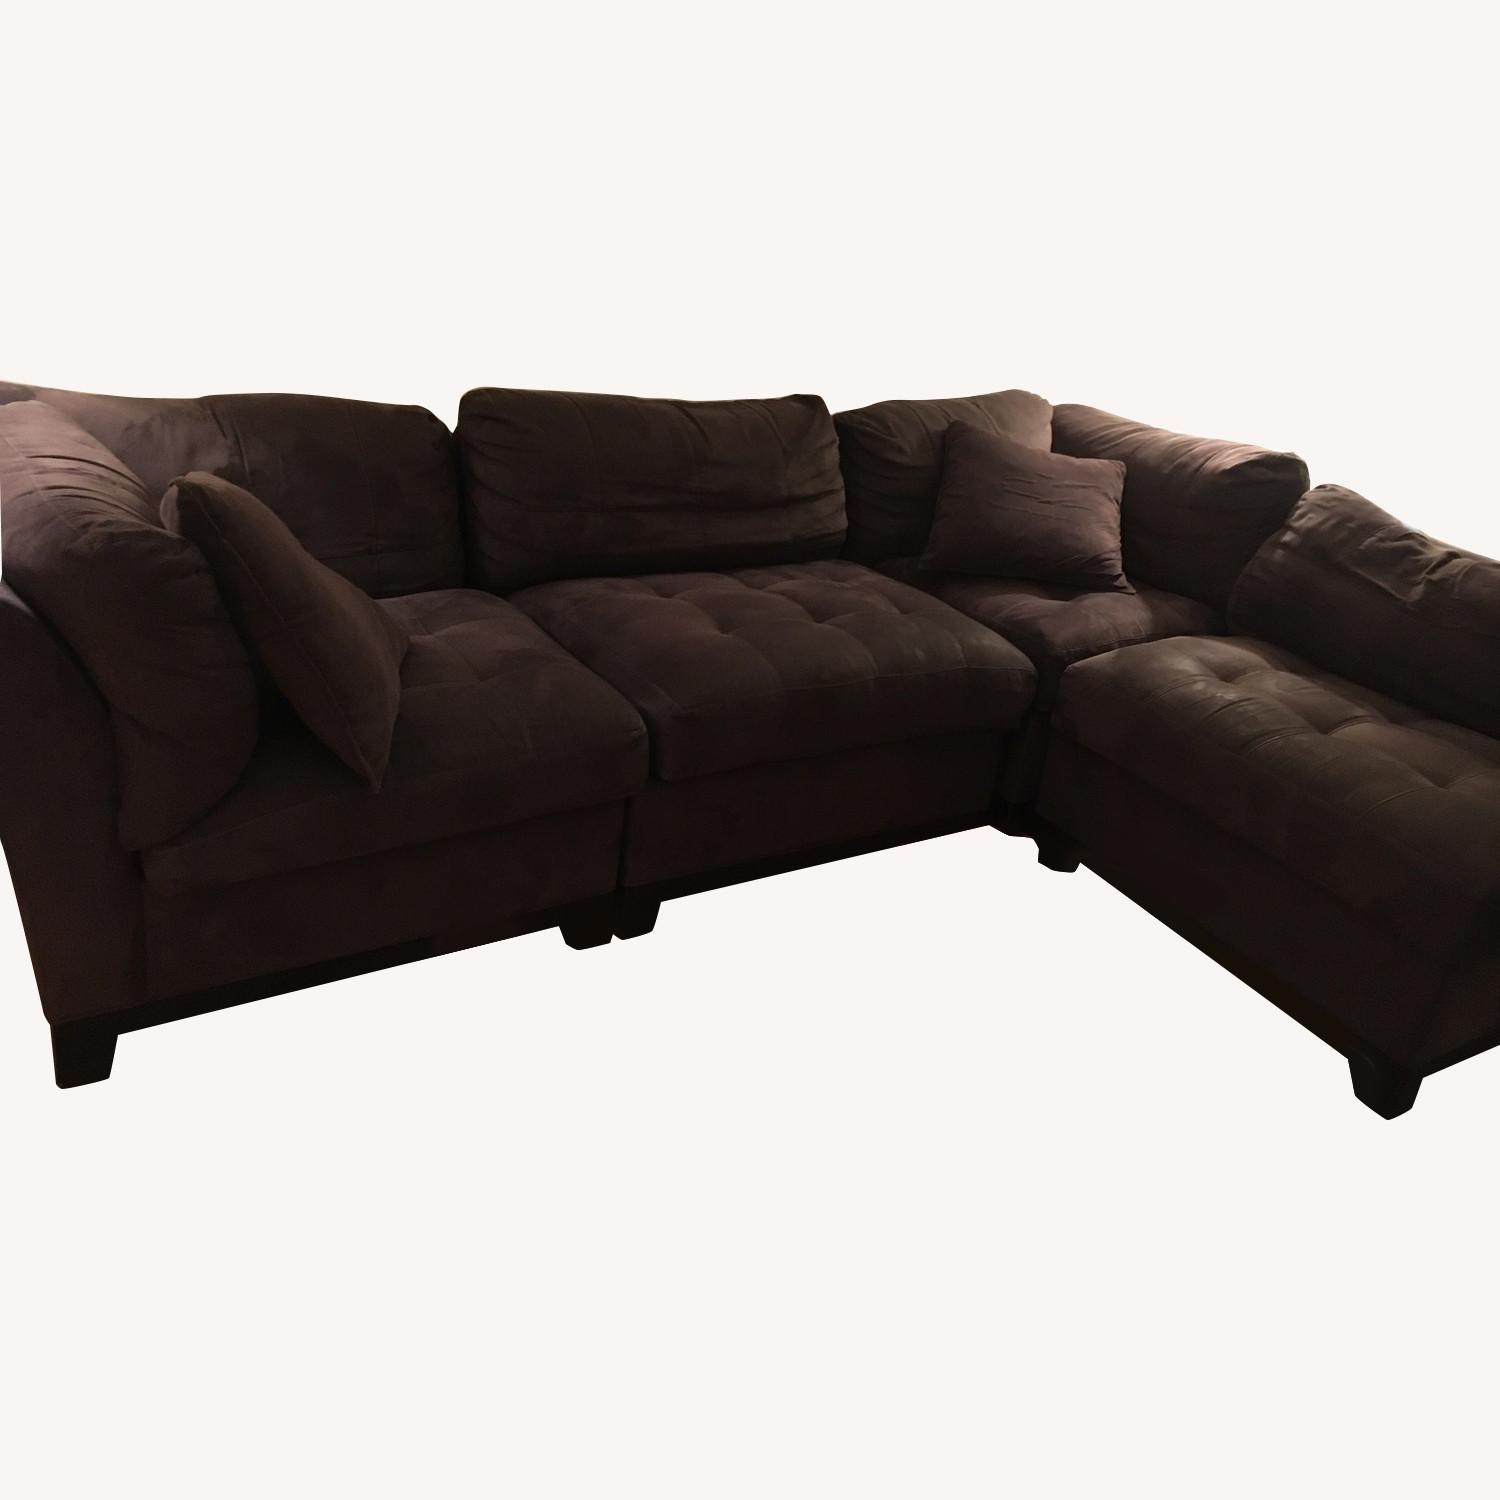 Eggplant colored 4 seater sectional - image-0